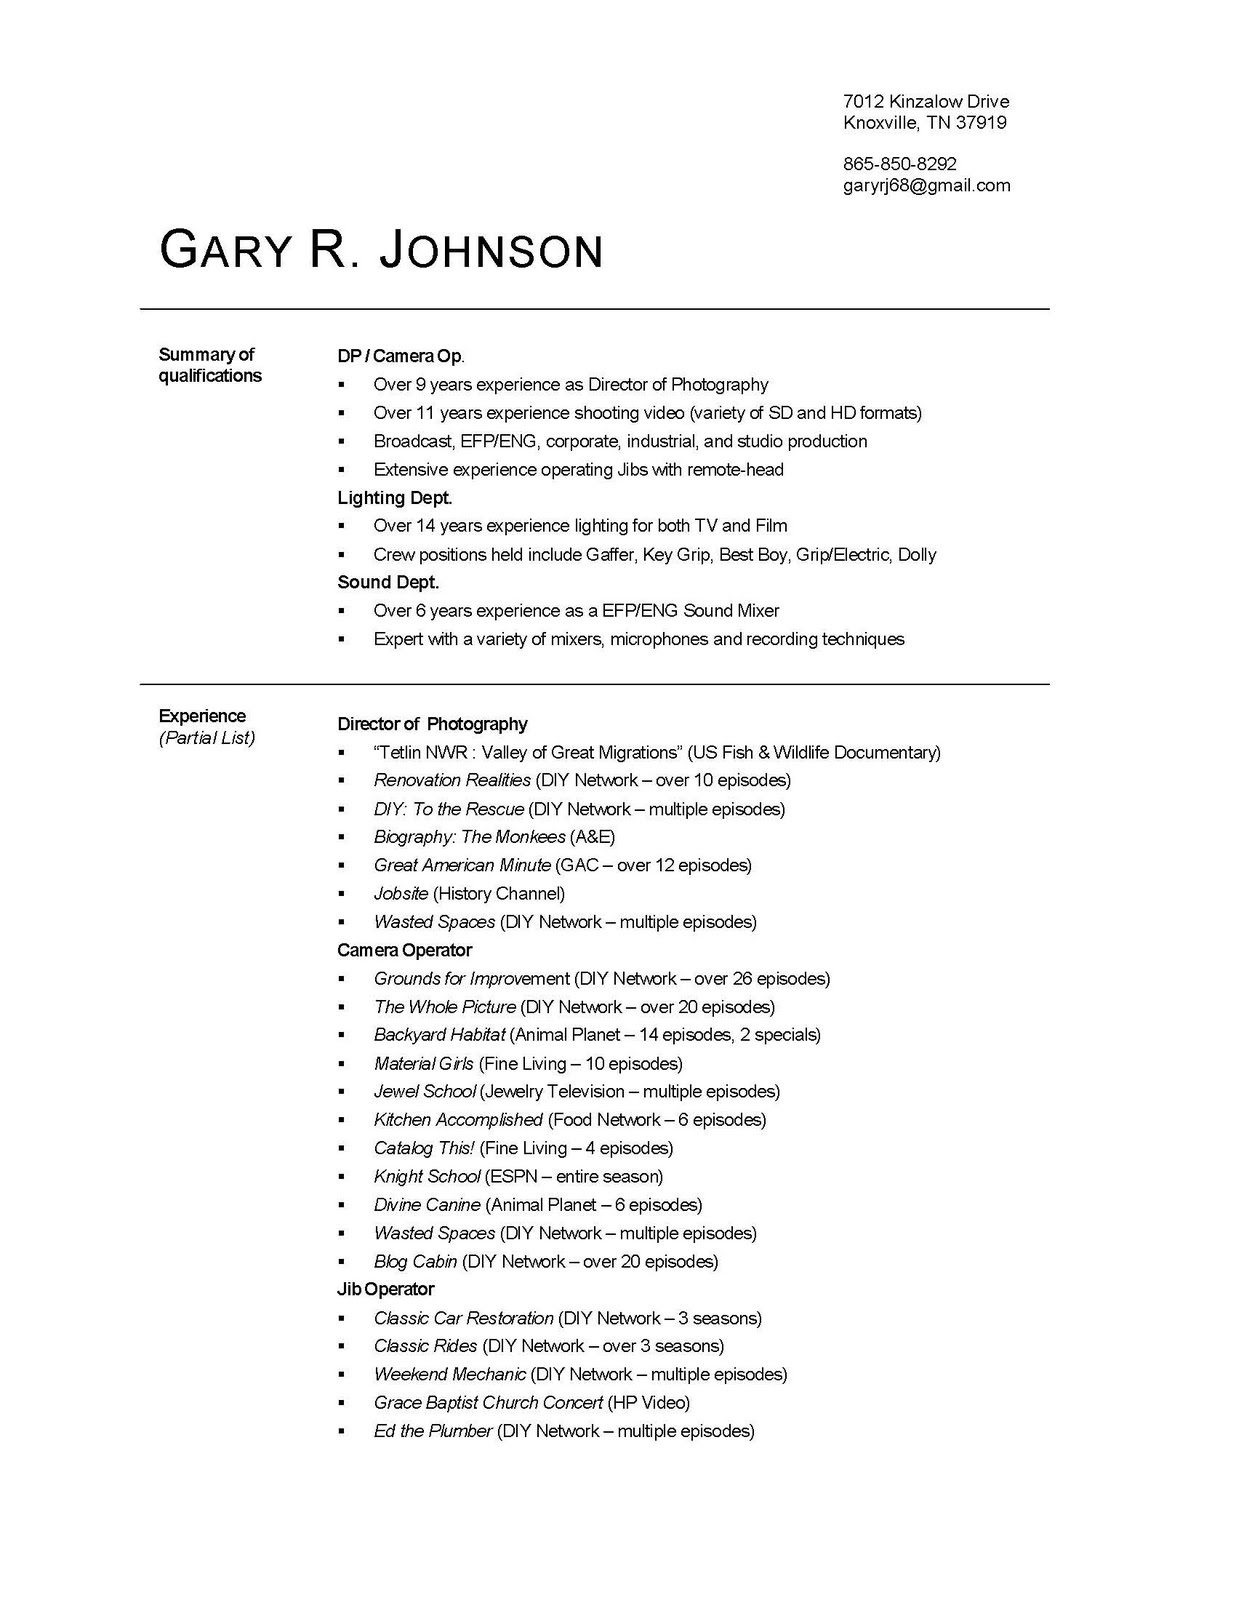 Gary R Johnson Director Of Photography Resume